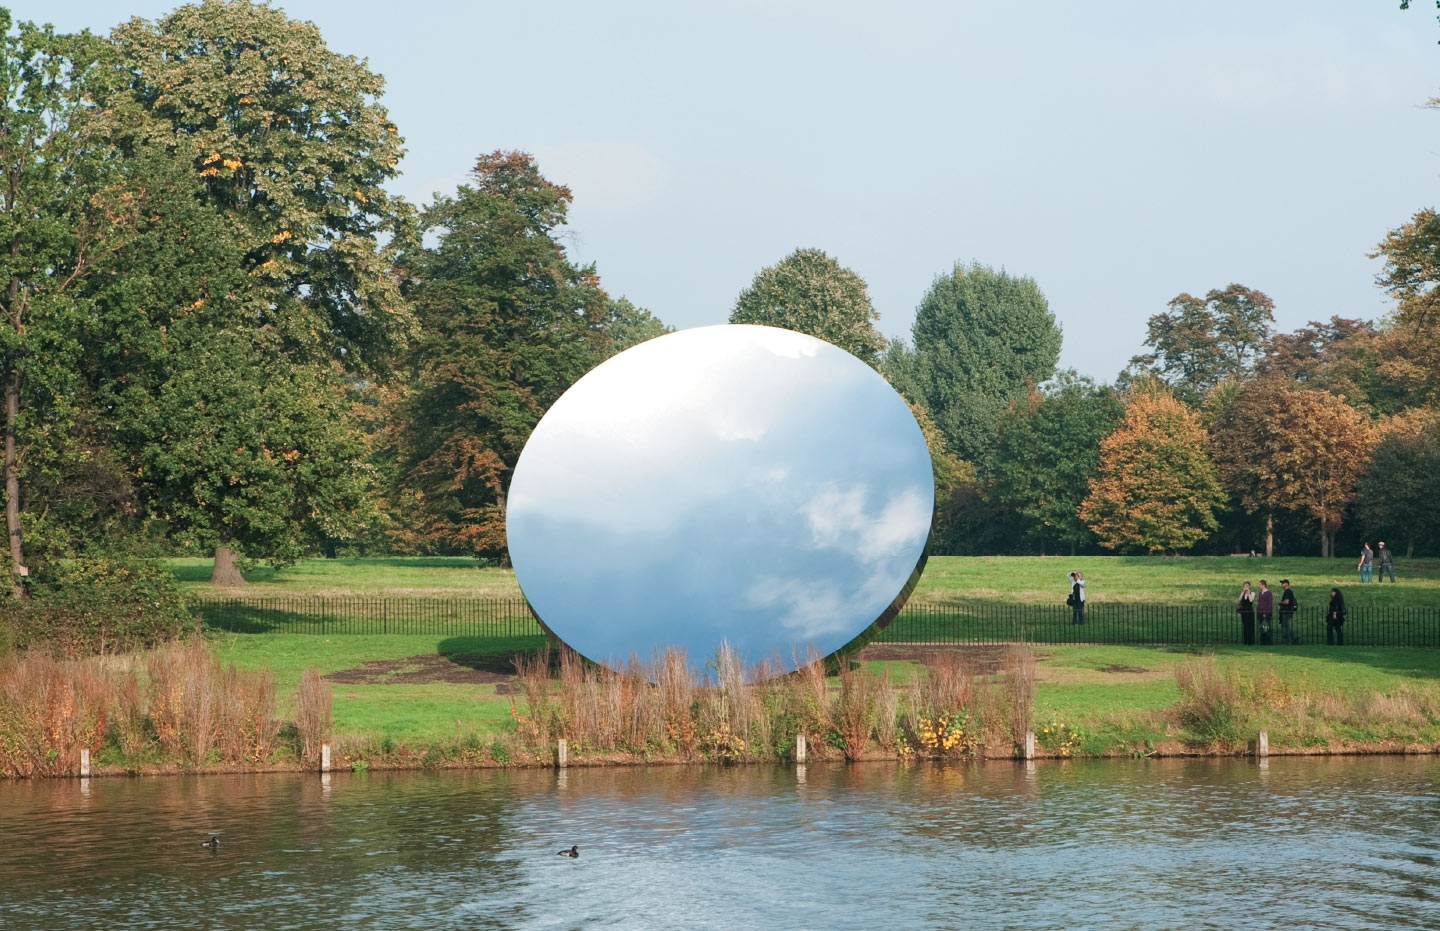 'Sky Mirror', 2006 Stainless Steel, Diameter 10m, Kensington Gardens, 2010-11 Photo: Tim Mitchell